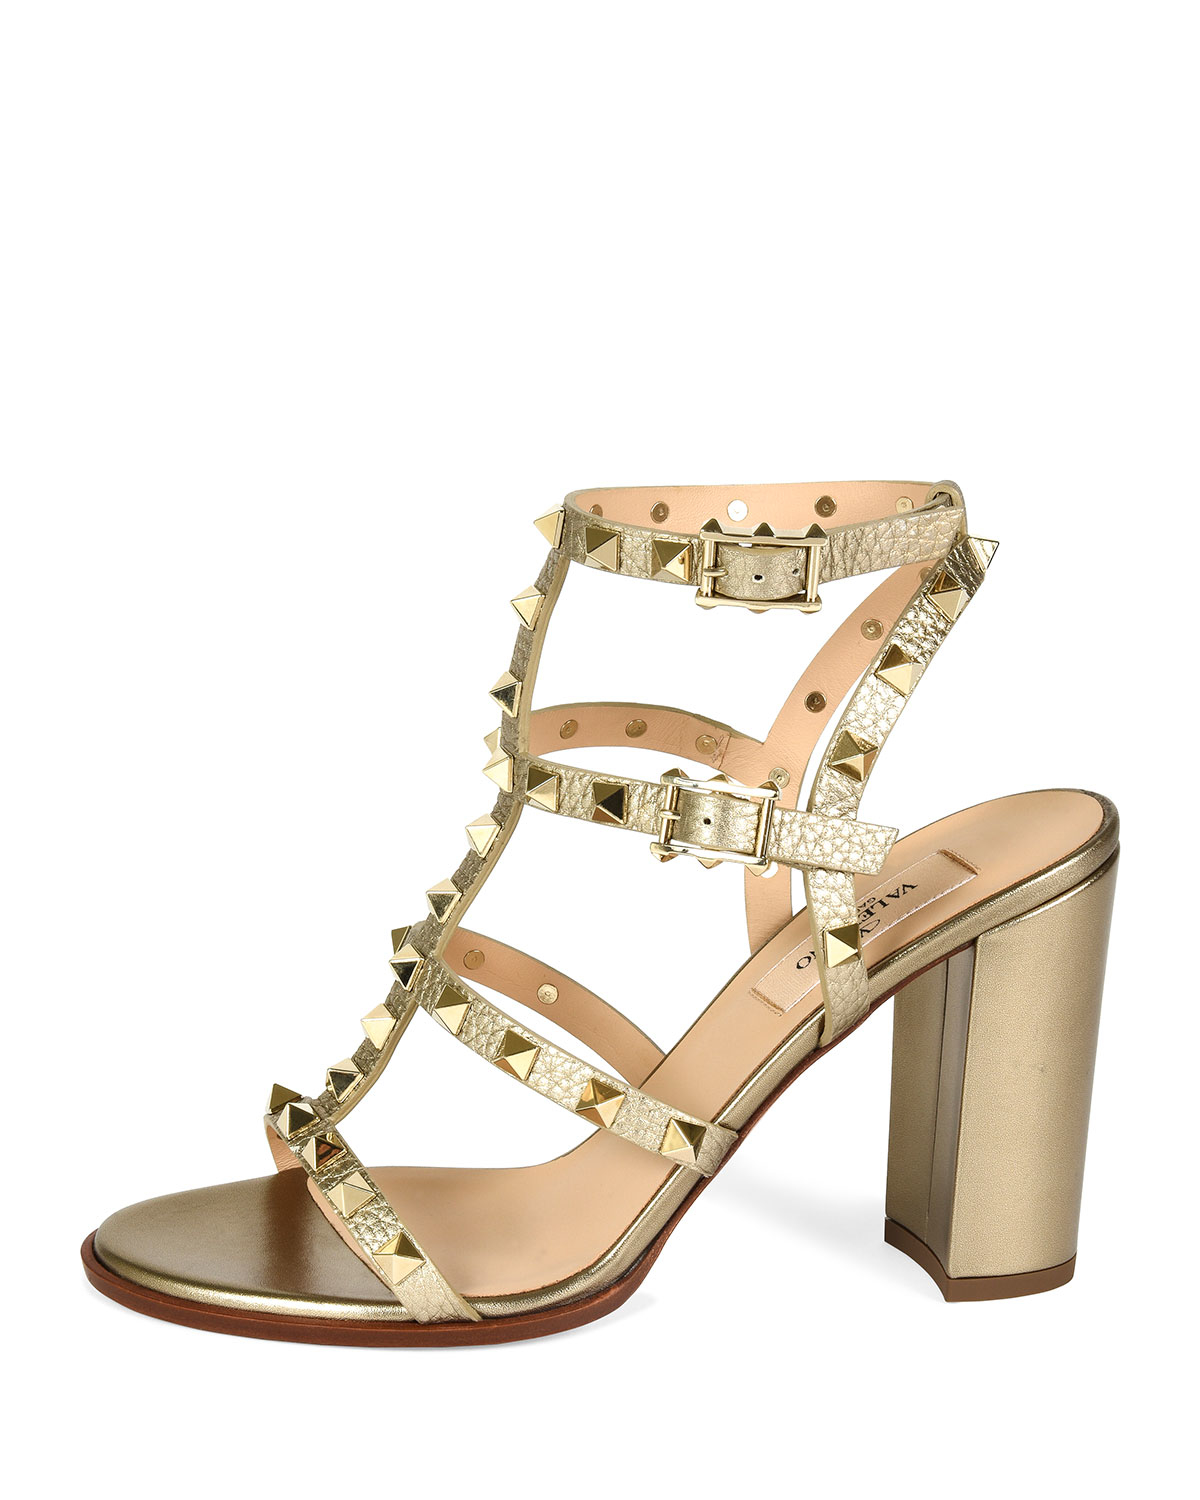 4316ff98e12 Lyst - Valentino Rockstud 90mm Metallic-Leather Sandals in Metallic